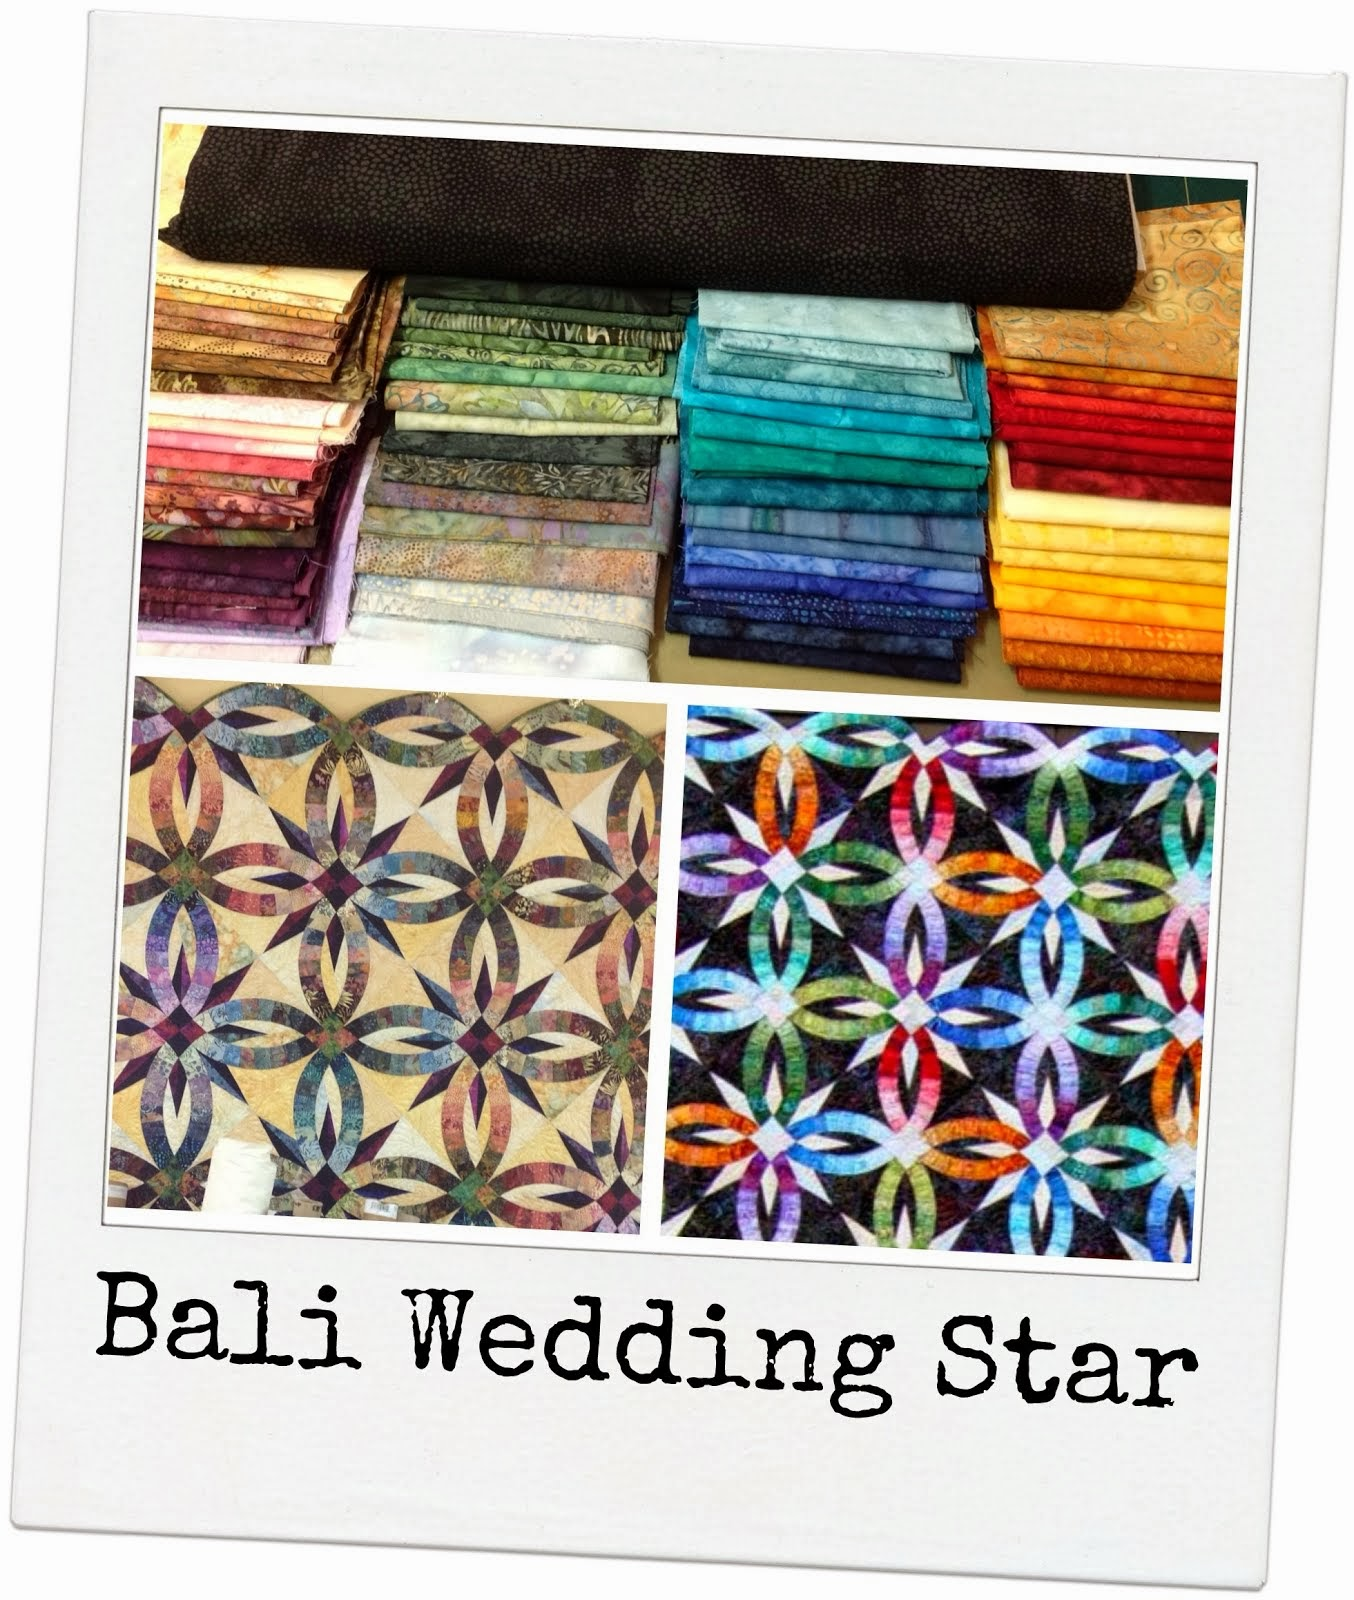 Bali Wedding Star